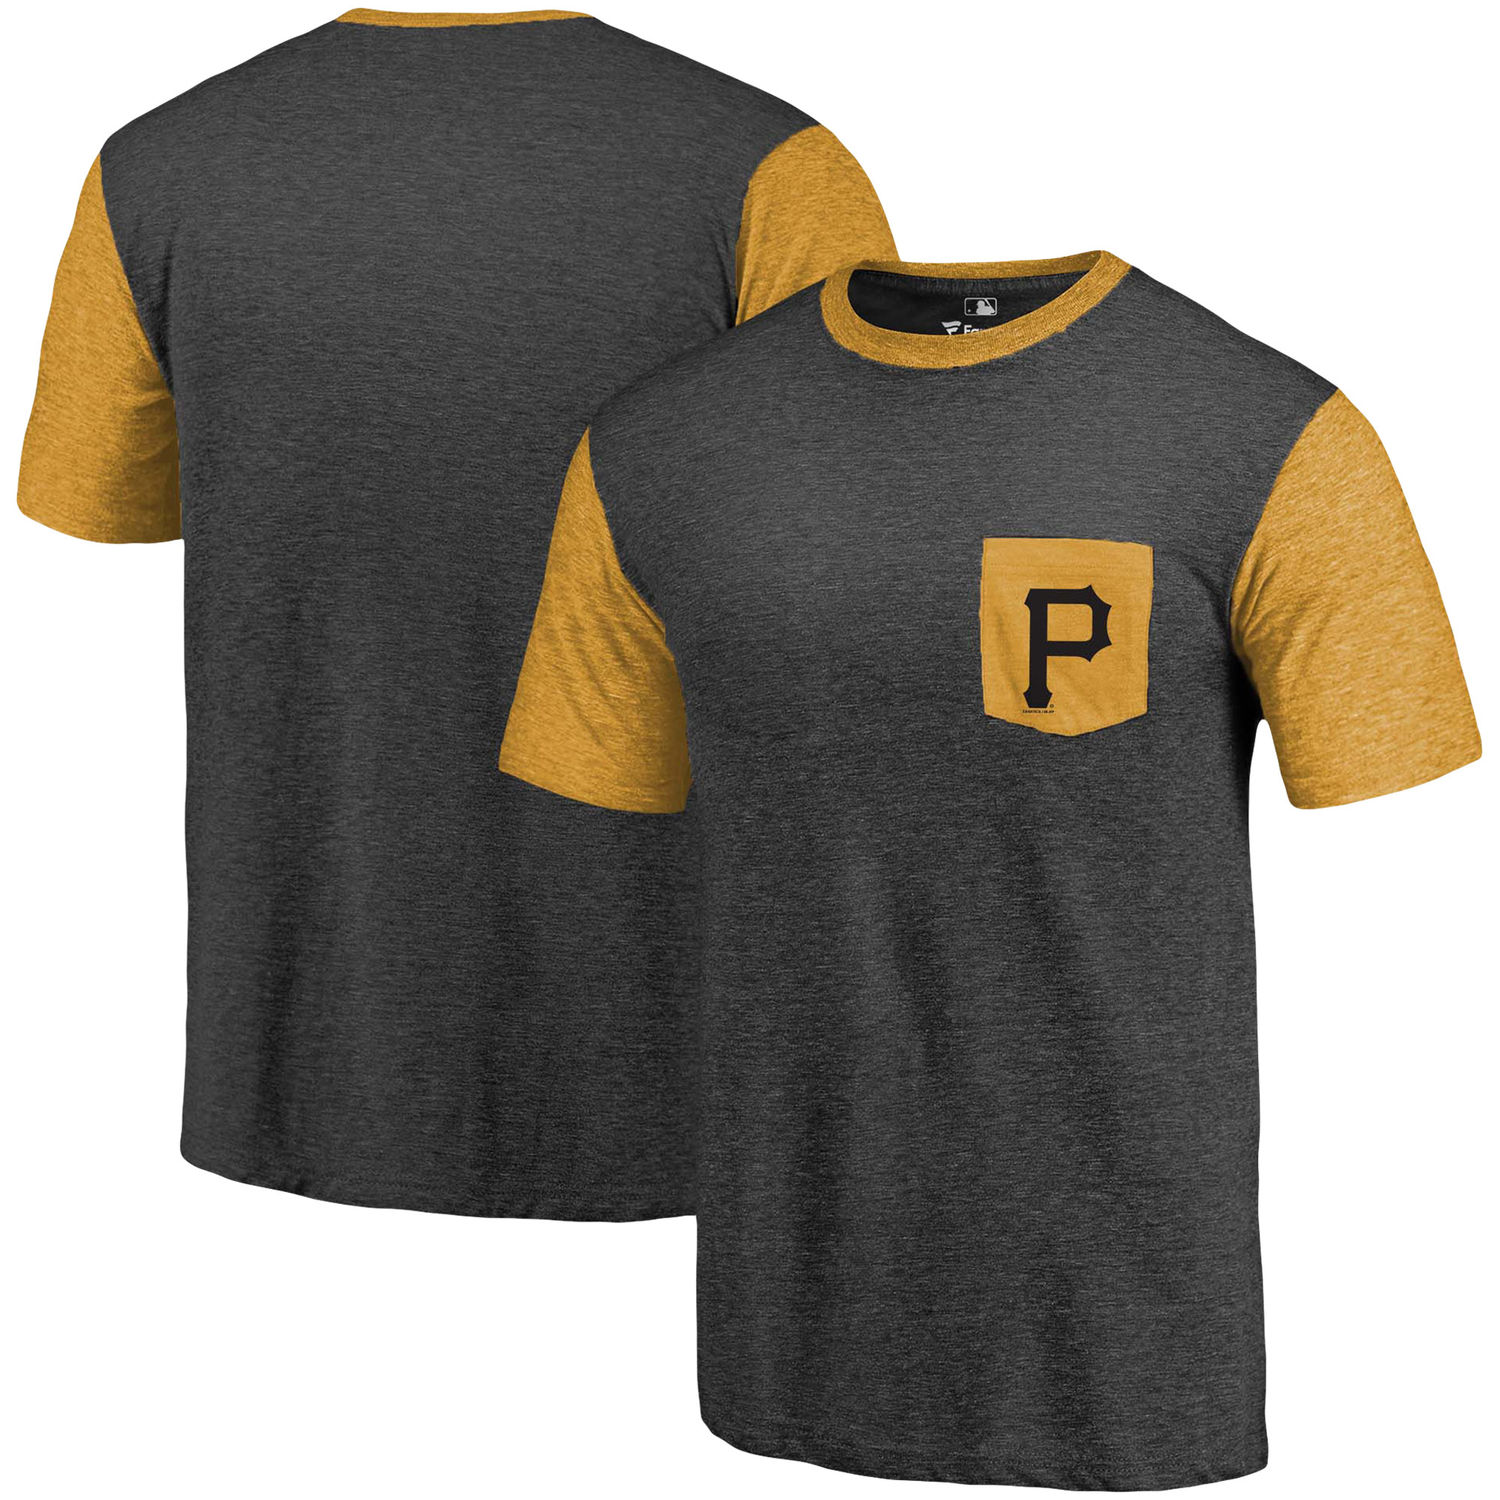 Men's Pittsburgh Pirates Fanatics Branded Black-Gold Refresh Pocket T-Shirt